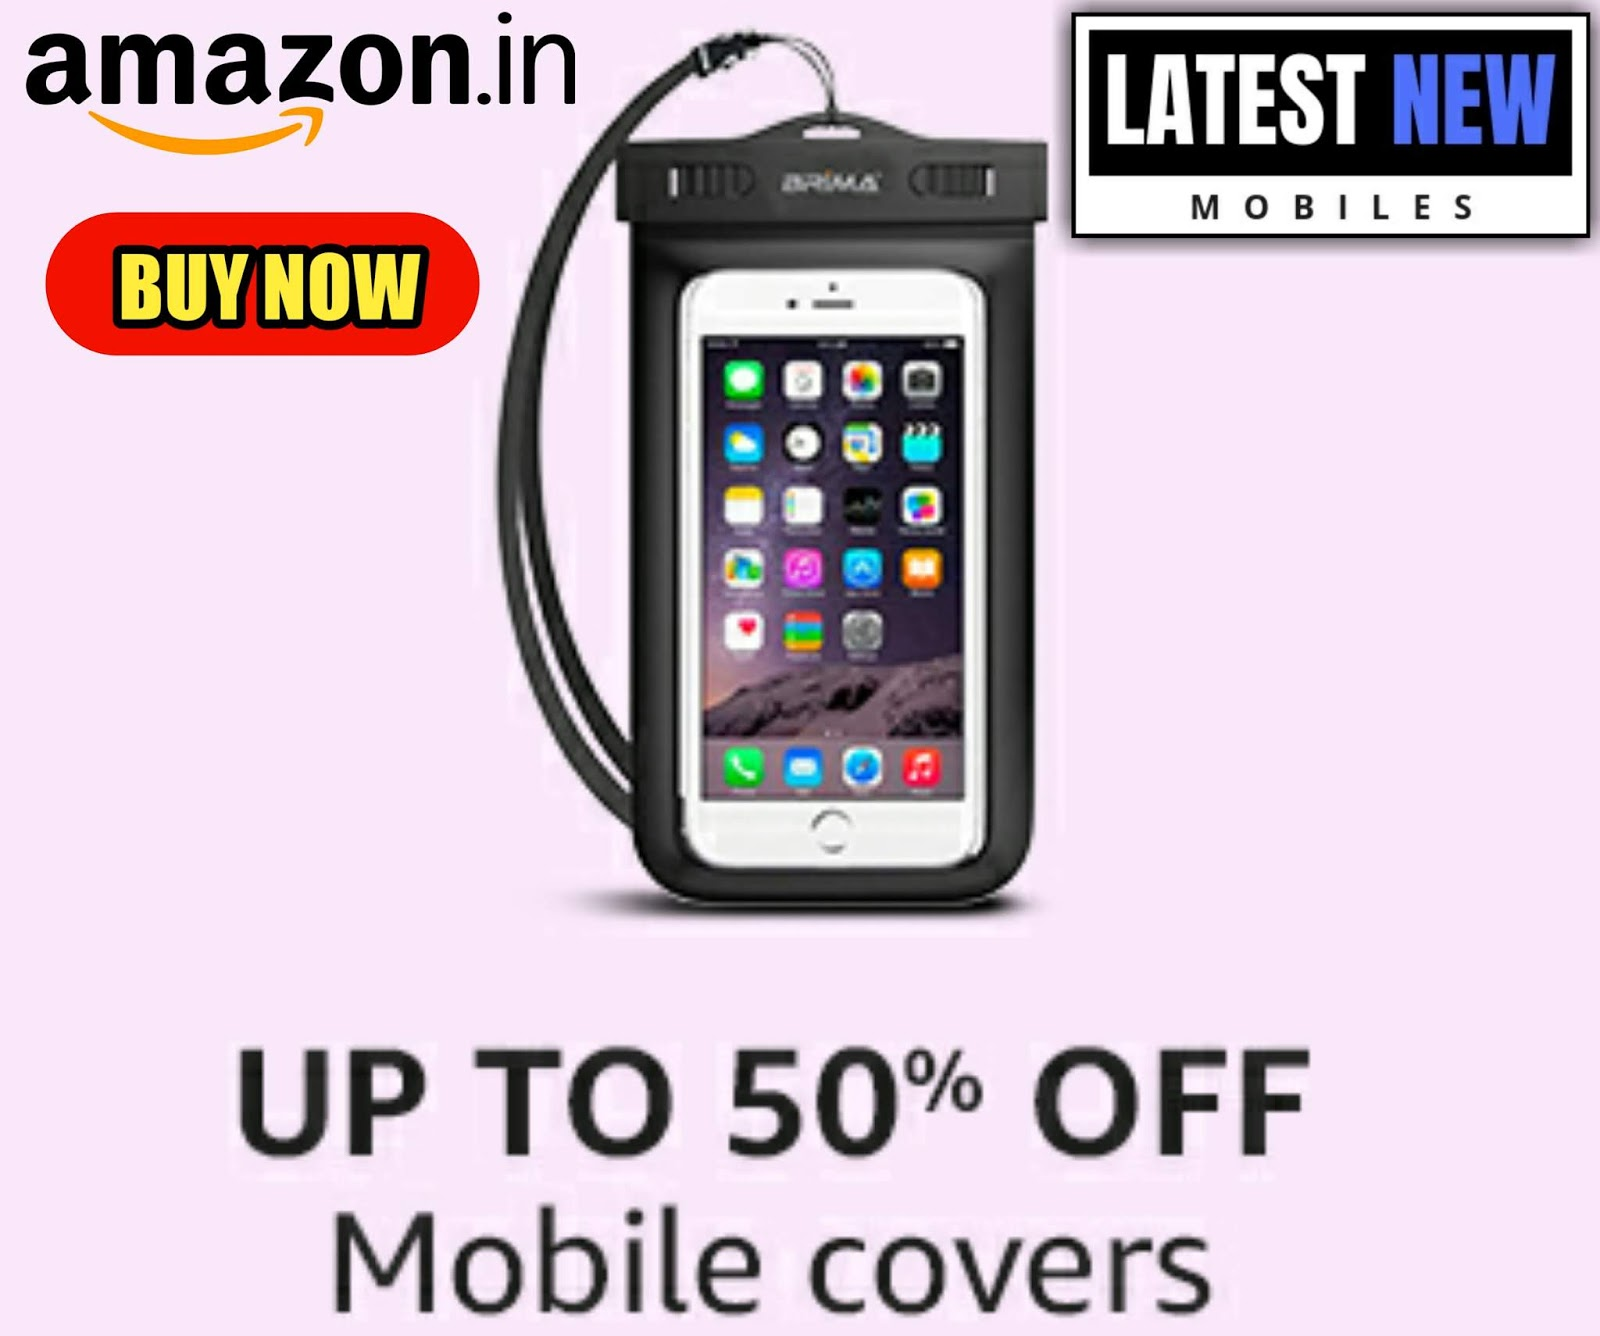 Mobile Covers - UP TO 50% OFF